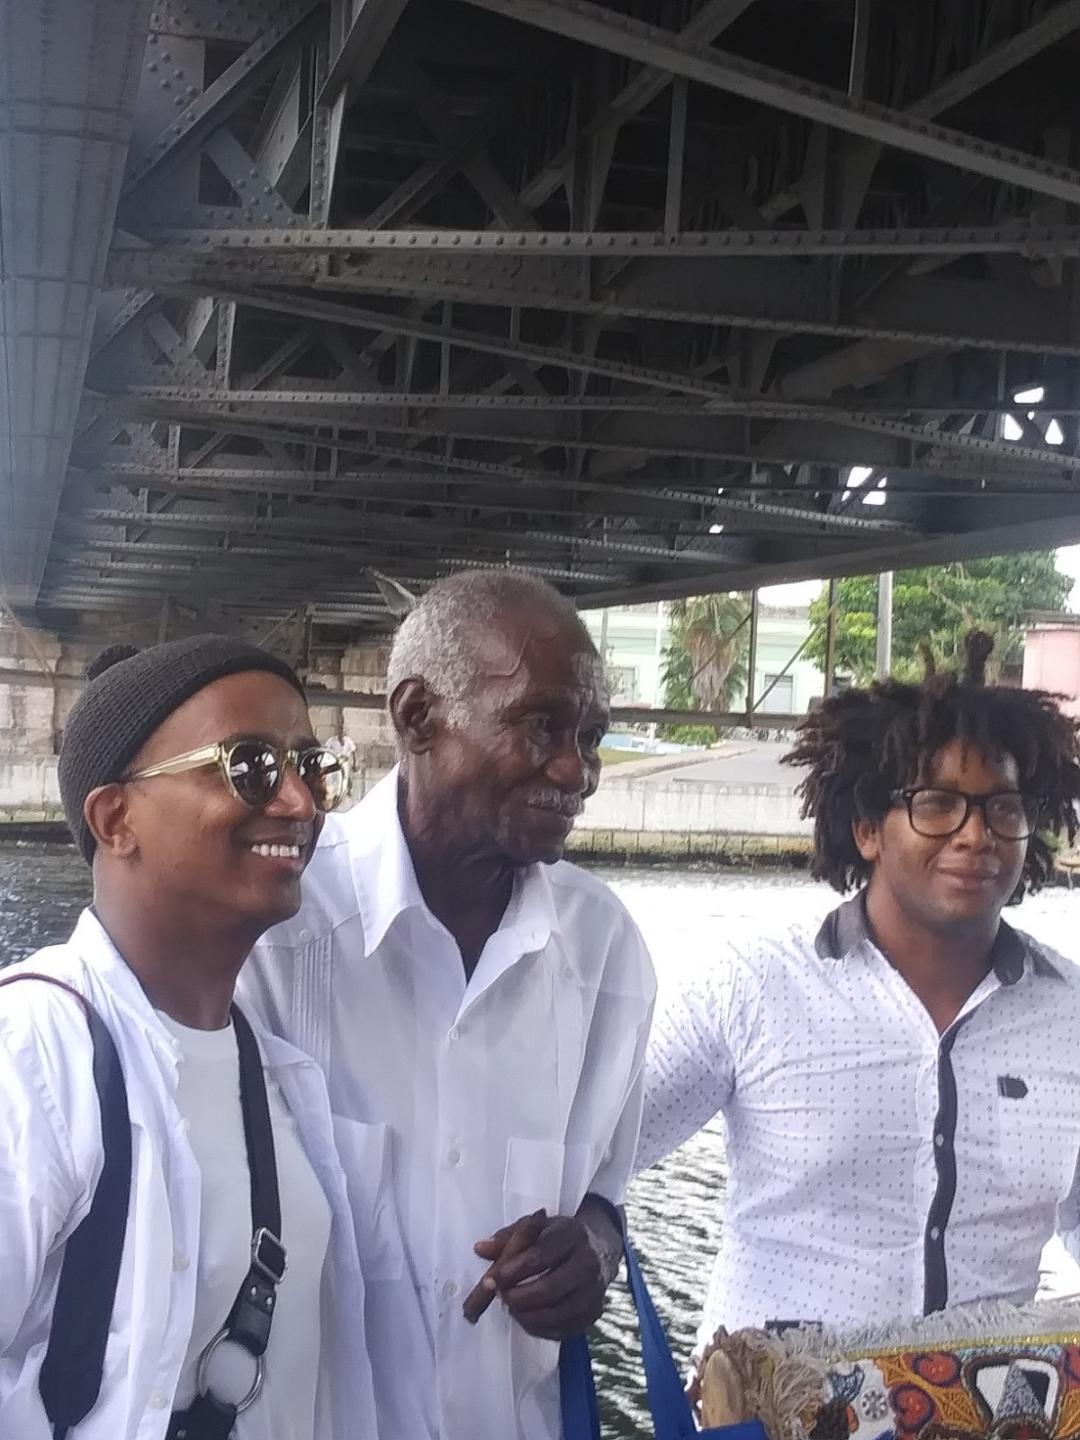 After the performance, artist Dawit L. Petros, left, poses with his mentor on the project, center, and the drummer who performed on the river wall Photo: Cuban Art News